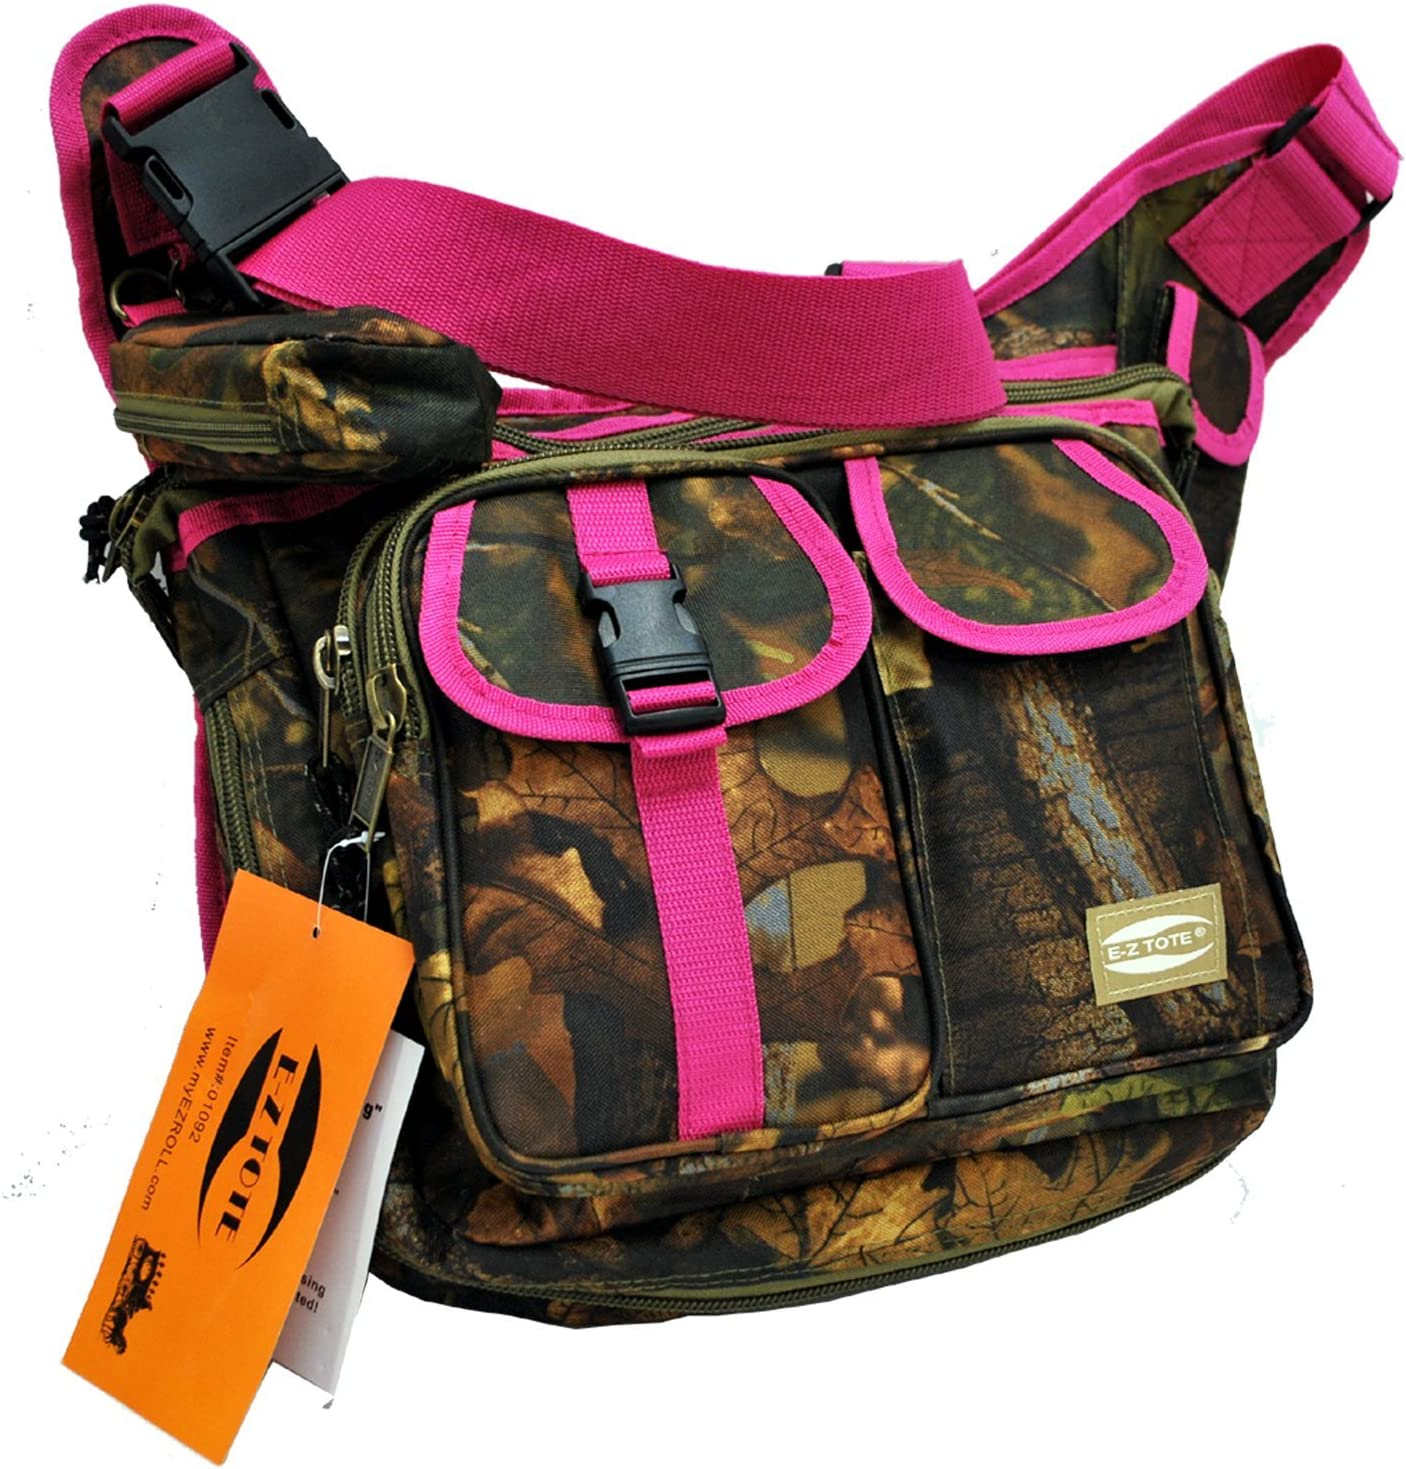 E-Z Tote Real Tree Print Hunting Shoulder Bag in 3 Colors